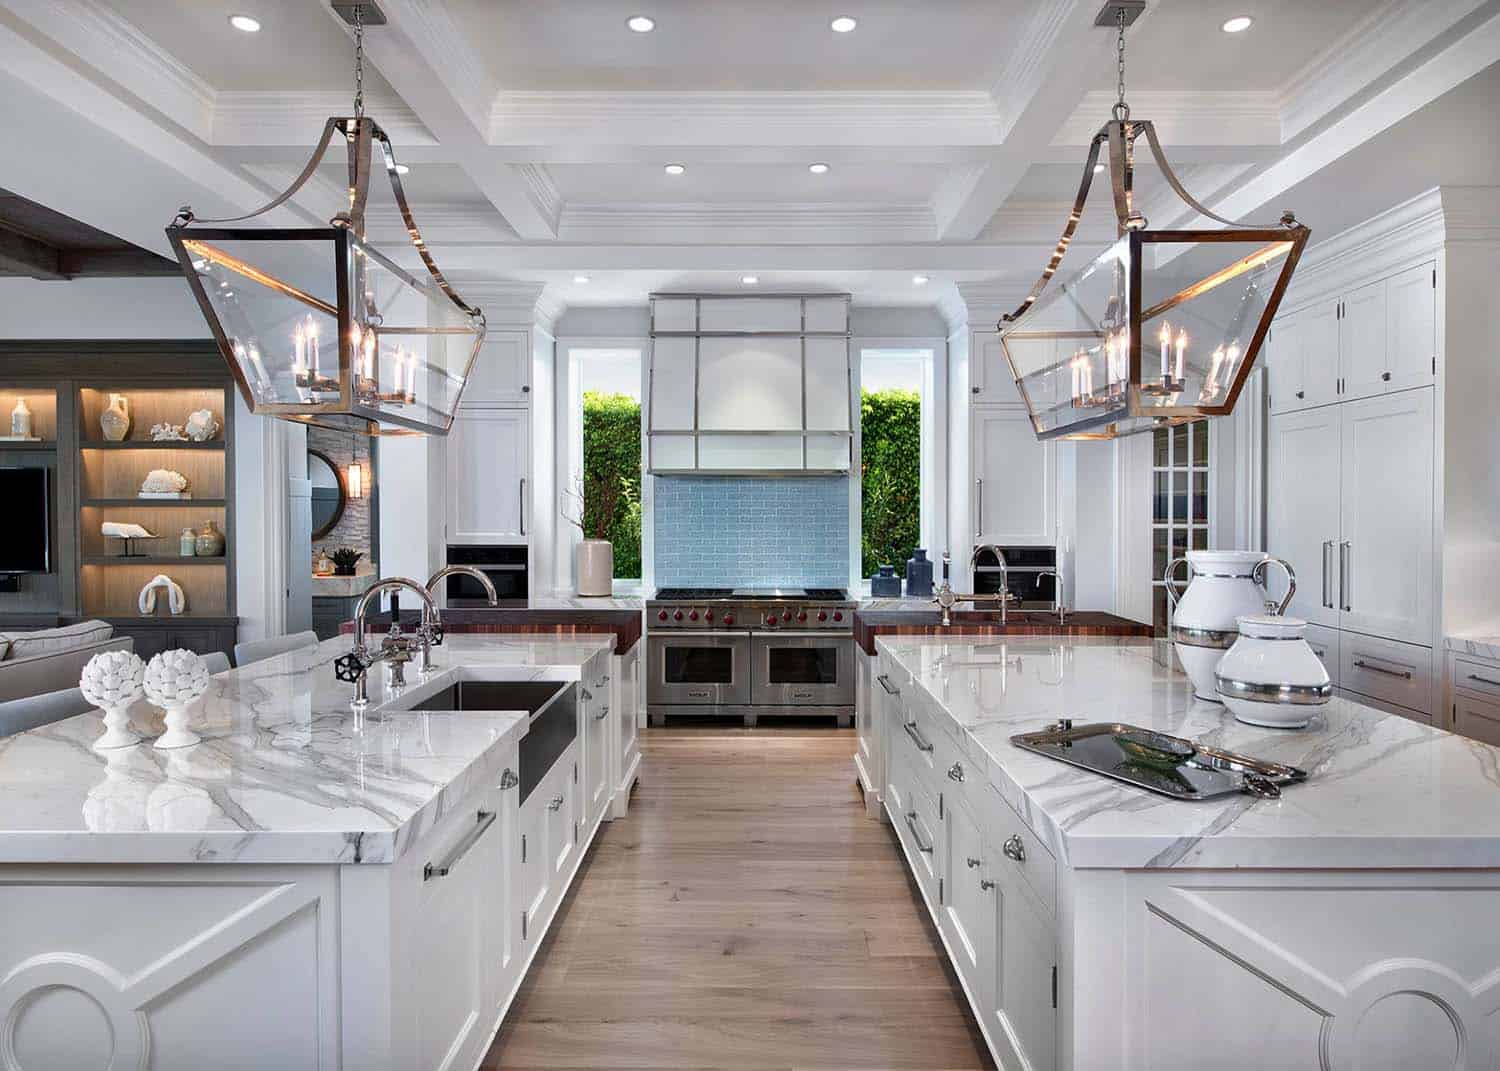 Luxury Waterfront Home-W Design Interiors-05-1 Kindesign